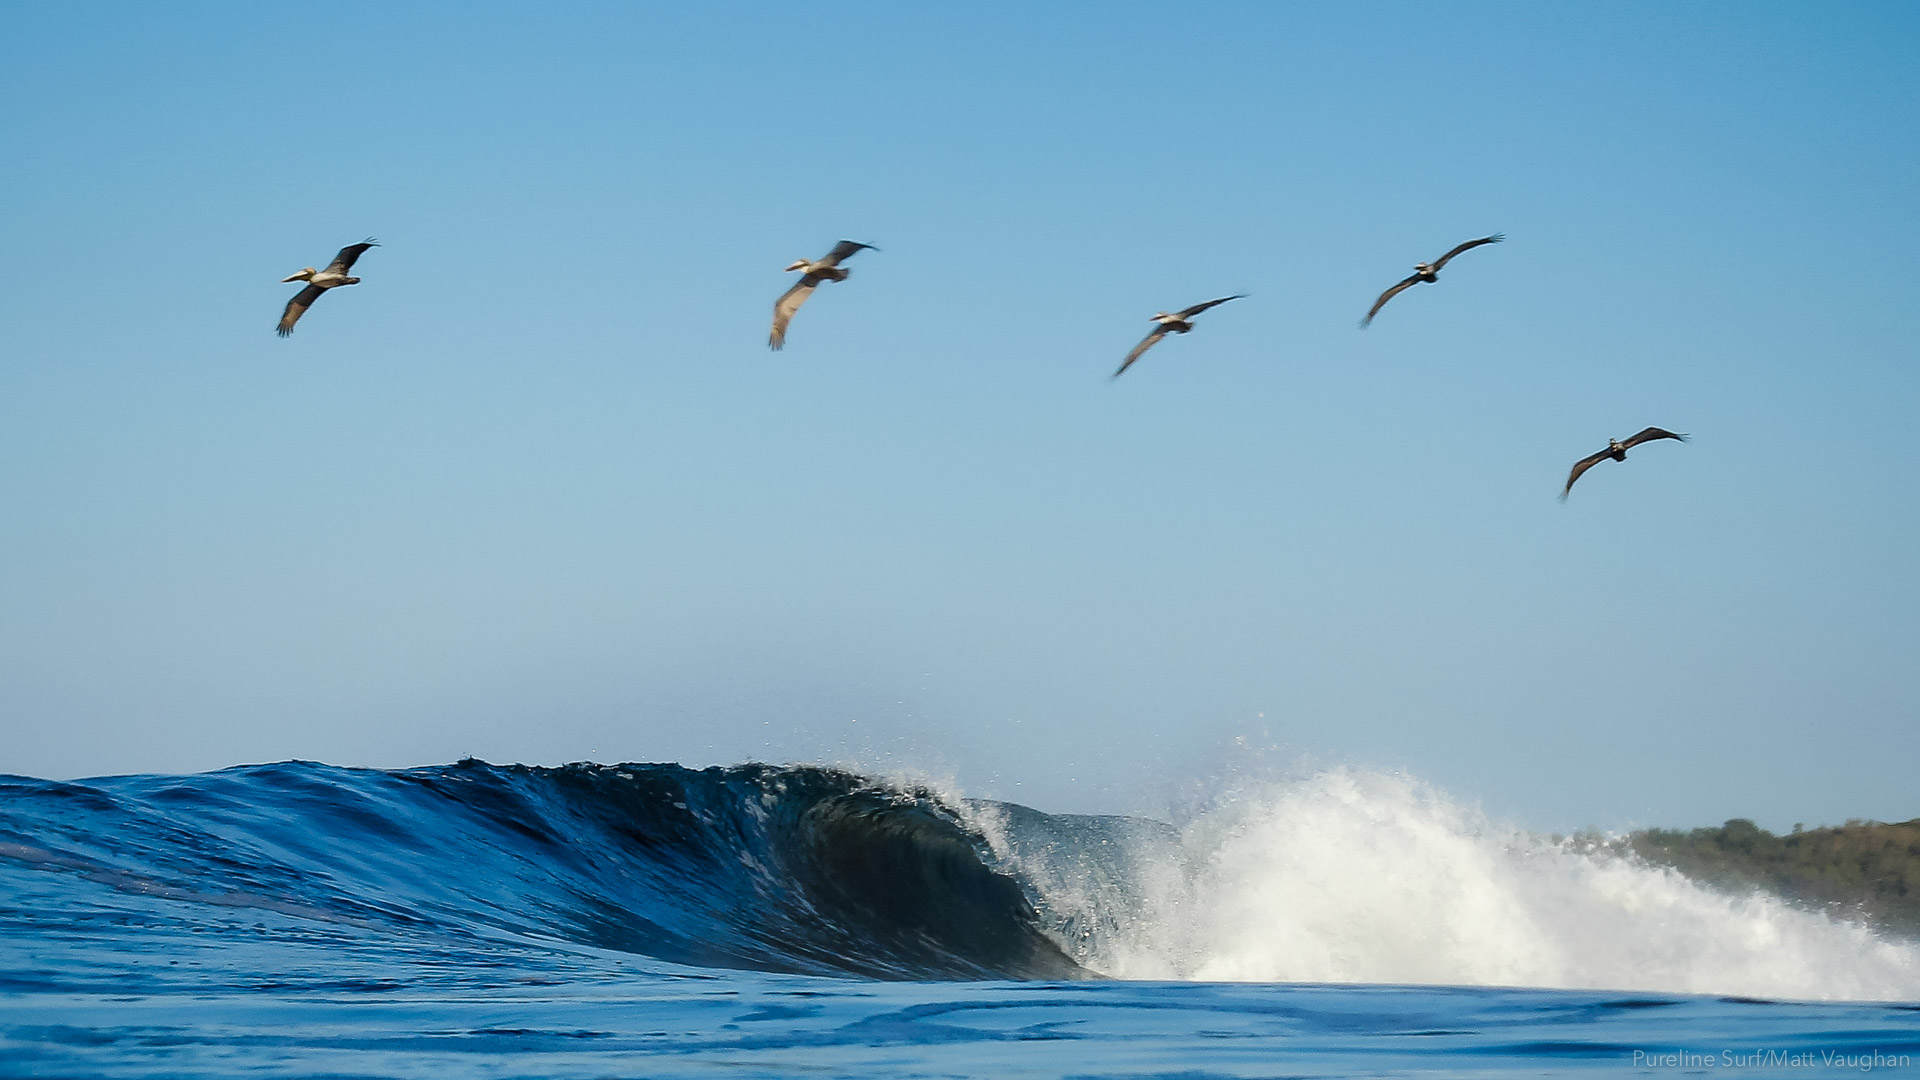 A barreling right hand beach break with brown pelicans flying overhead at Ostional Beach, a Pureline Surf coaching destination.